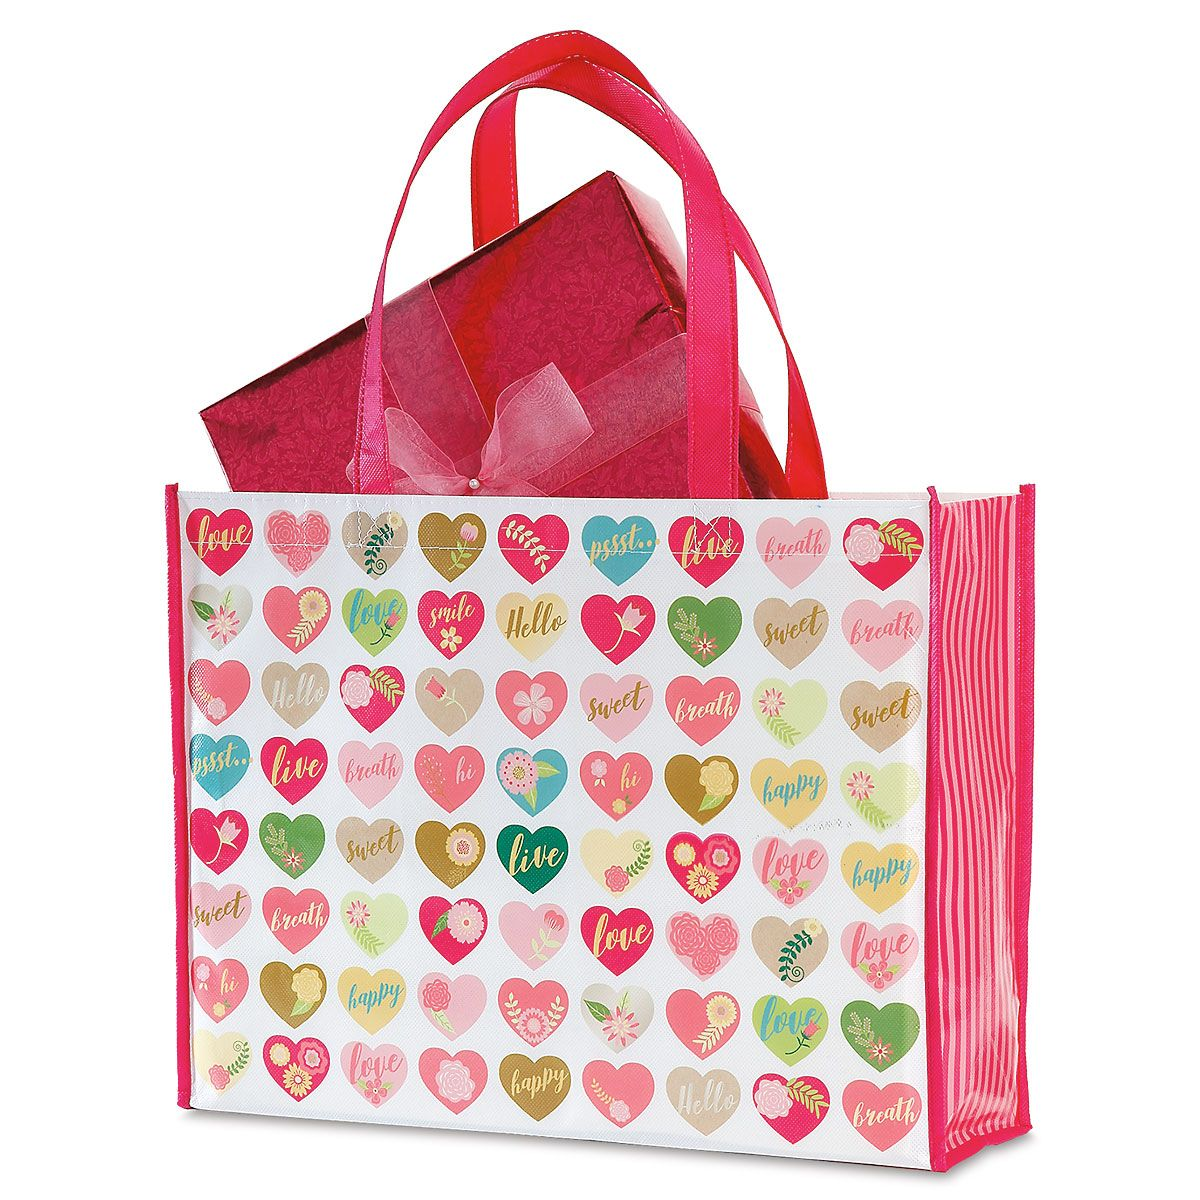 Valentine Shopping Bag - BOGO Get 2 shopping bags for the price of 1! Durable non-woven fabric tote is 16 L x 5 W x 13 H.